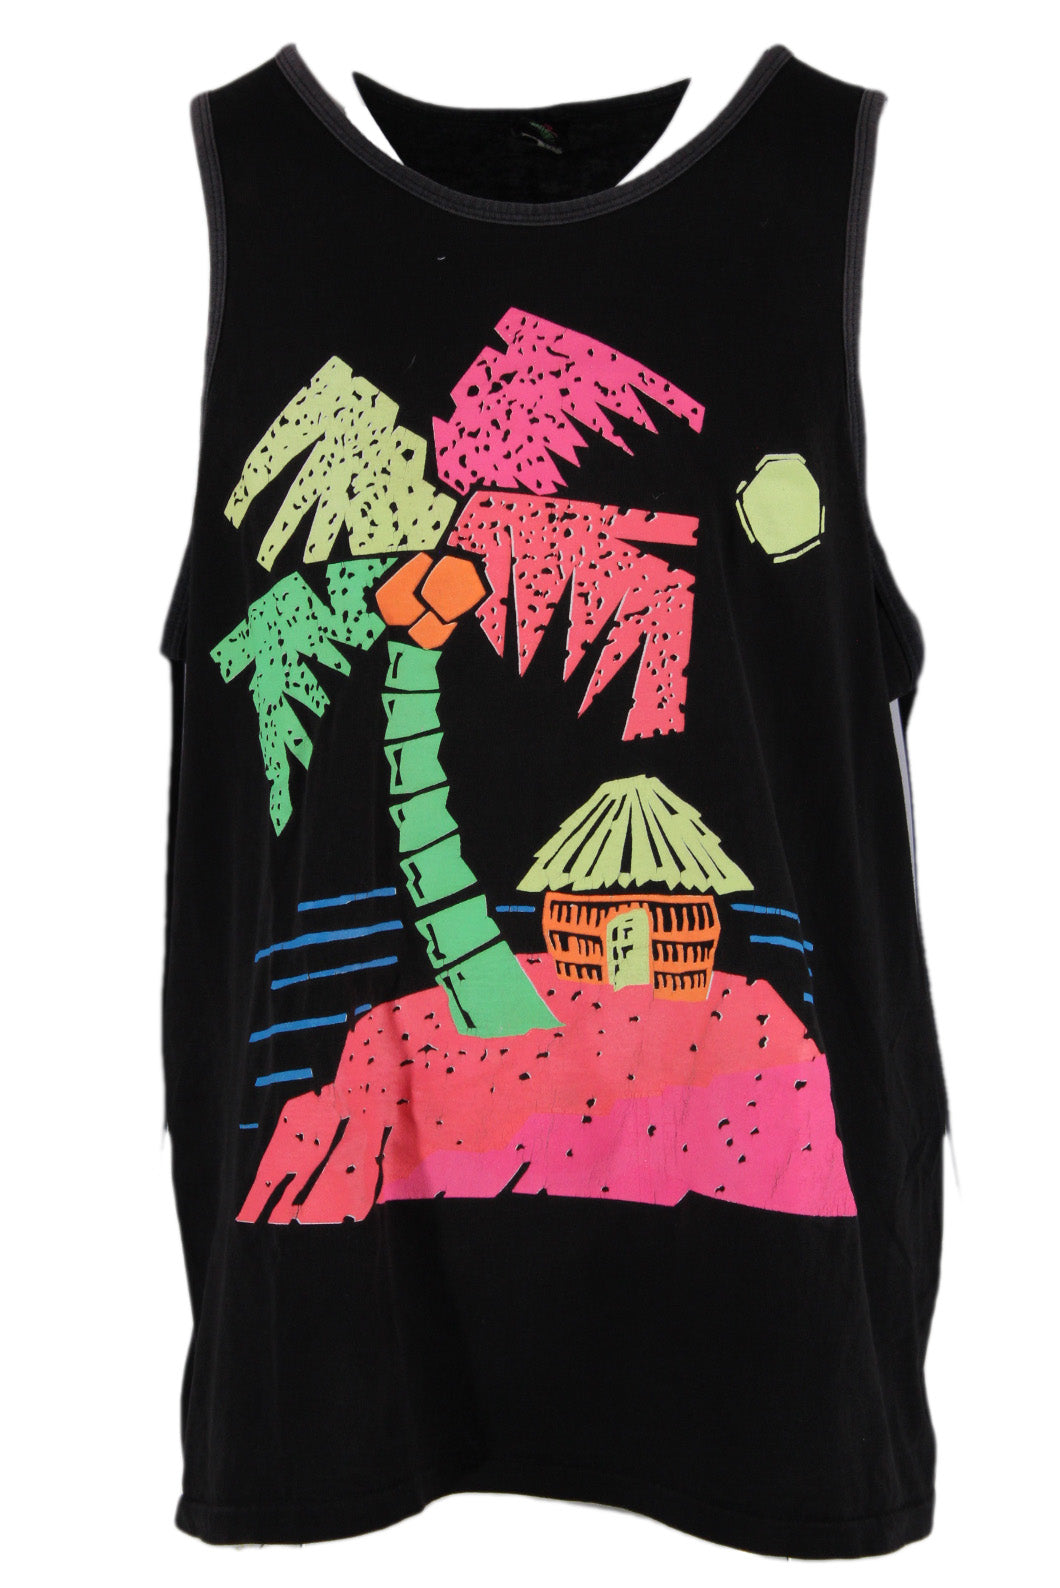 vintage daffy waterwear faded black cotton tank top. features neon beach graphic printed at front.